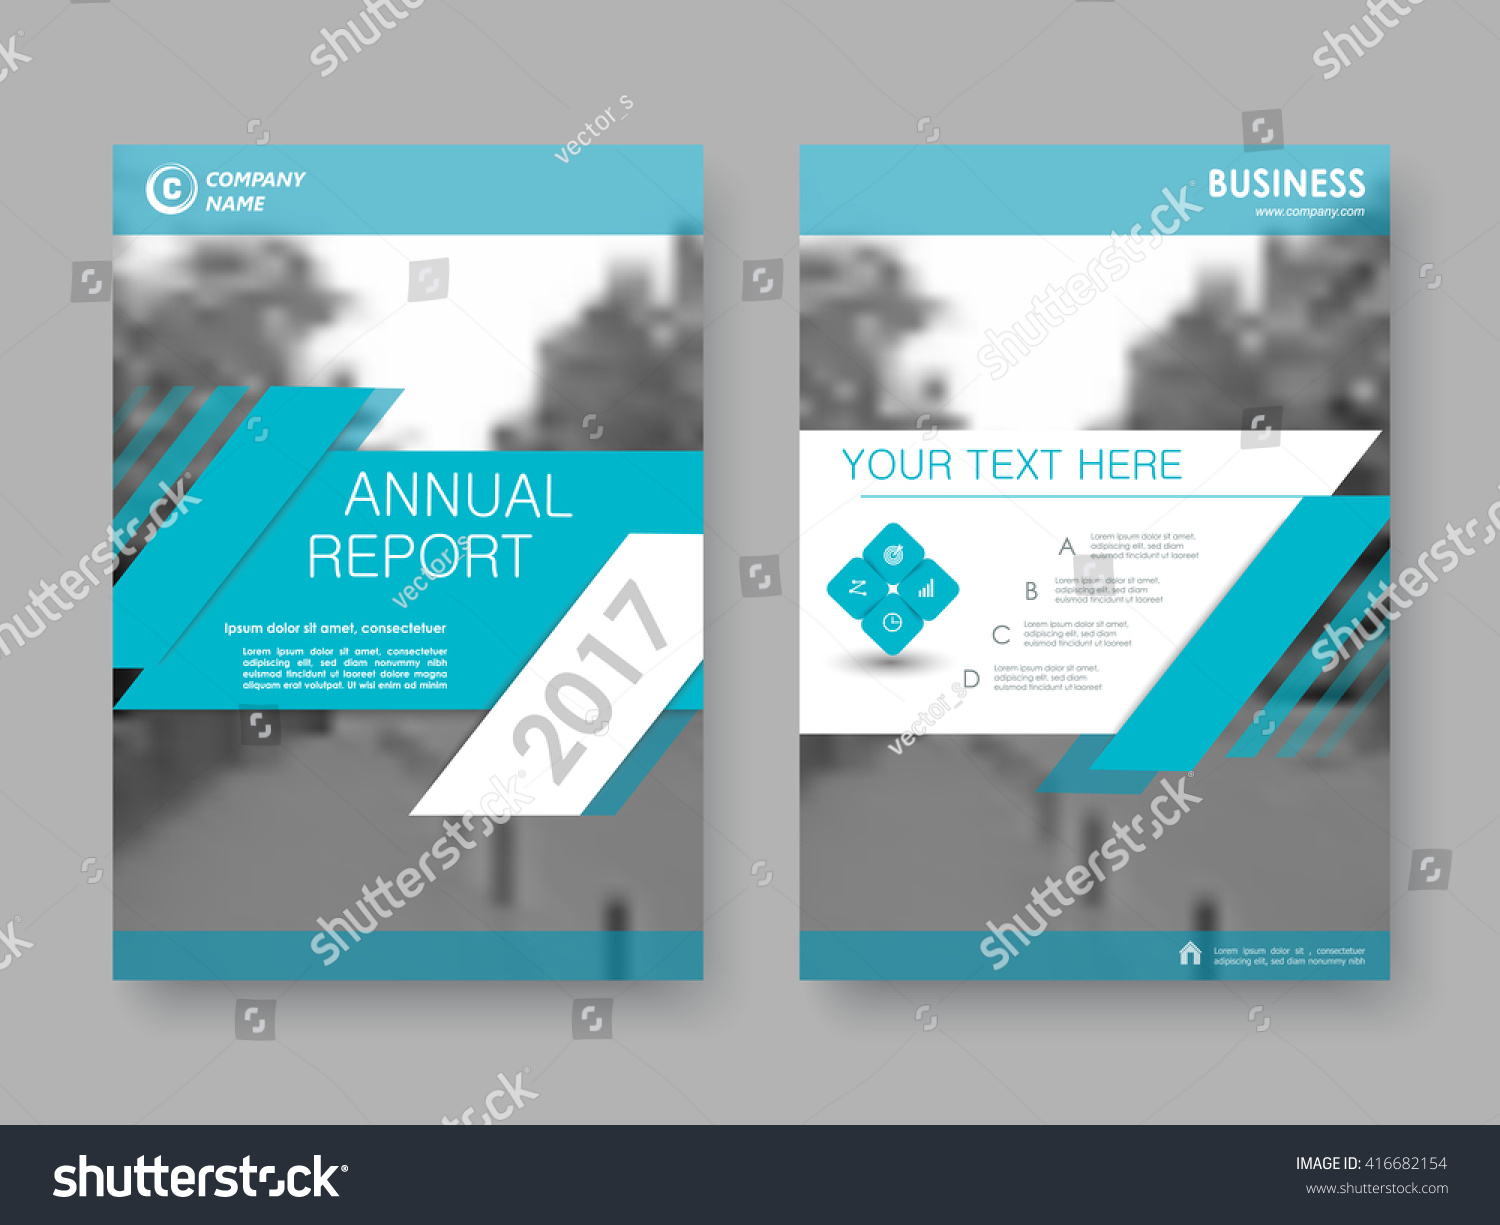 annual report flyer brochure front page のベクター画像素材